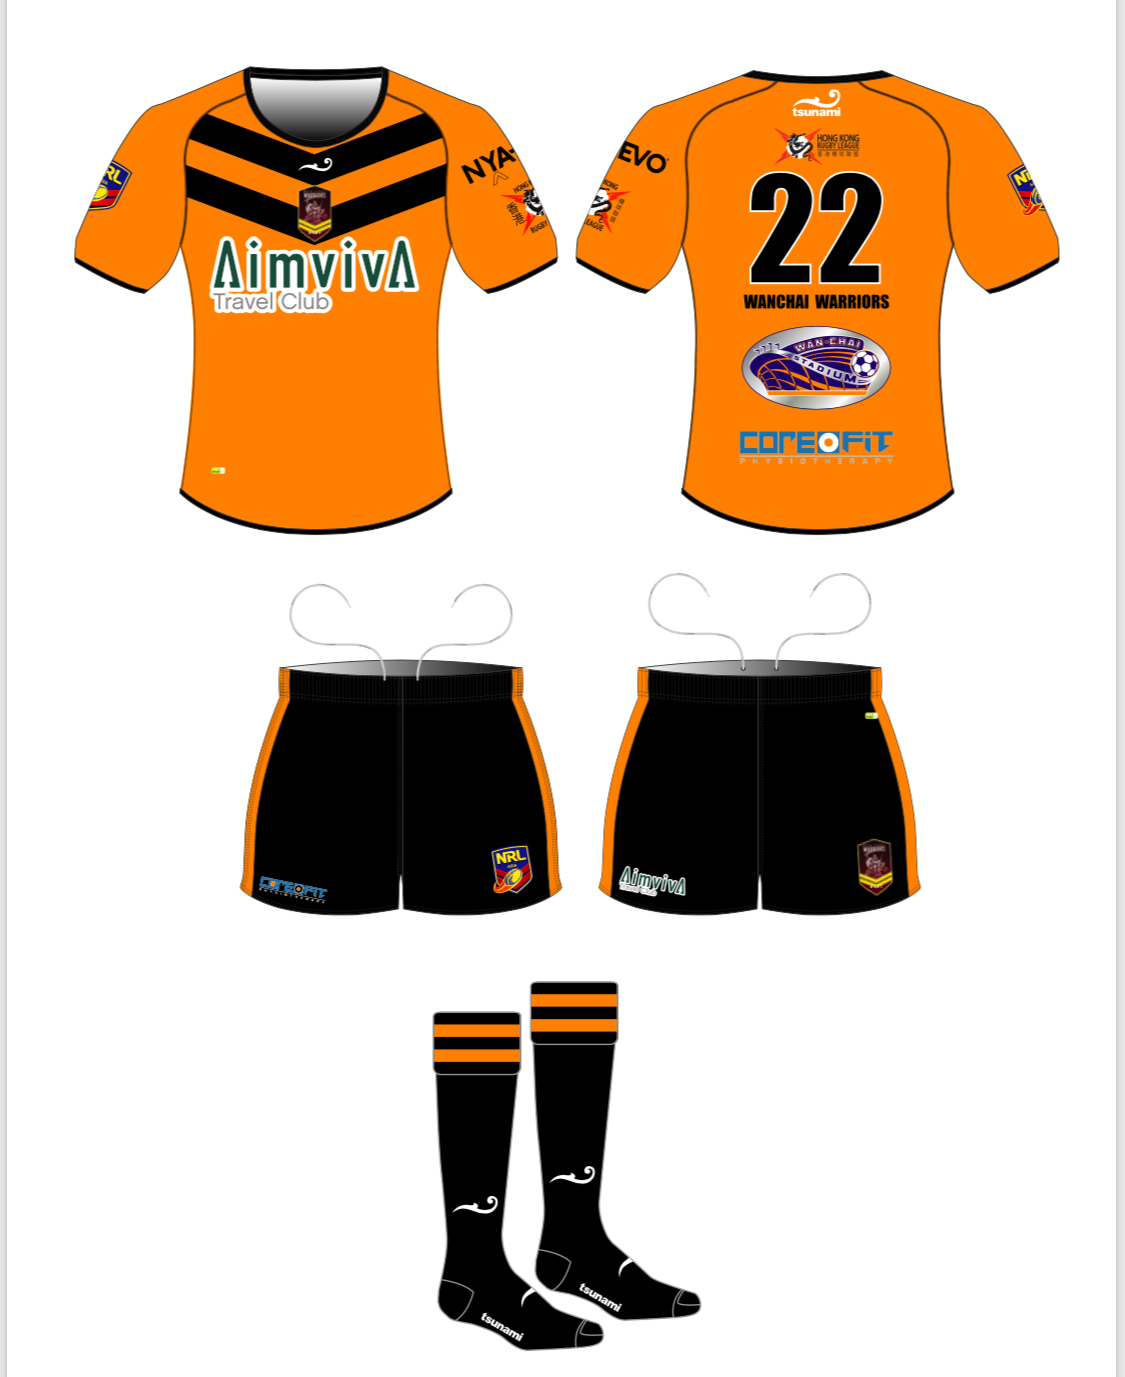 Wanchai Warriors Rugby Kit 2018 Sponsored by The Aimviva Travel Club